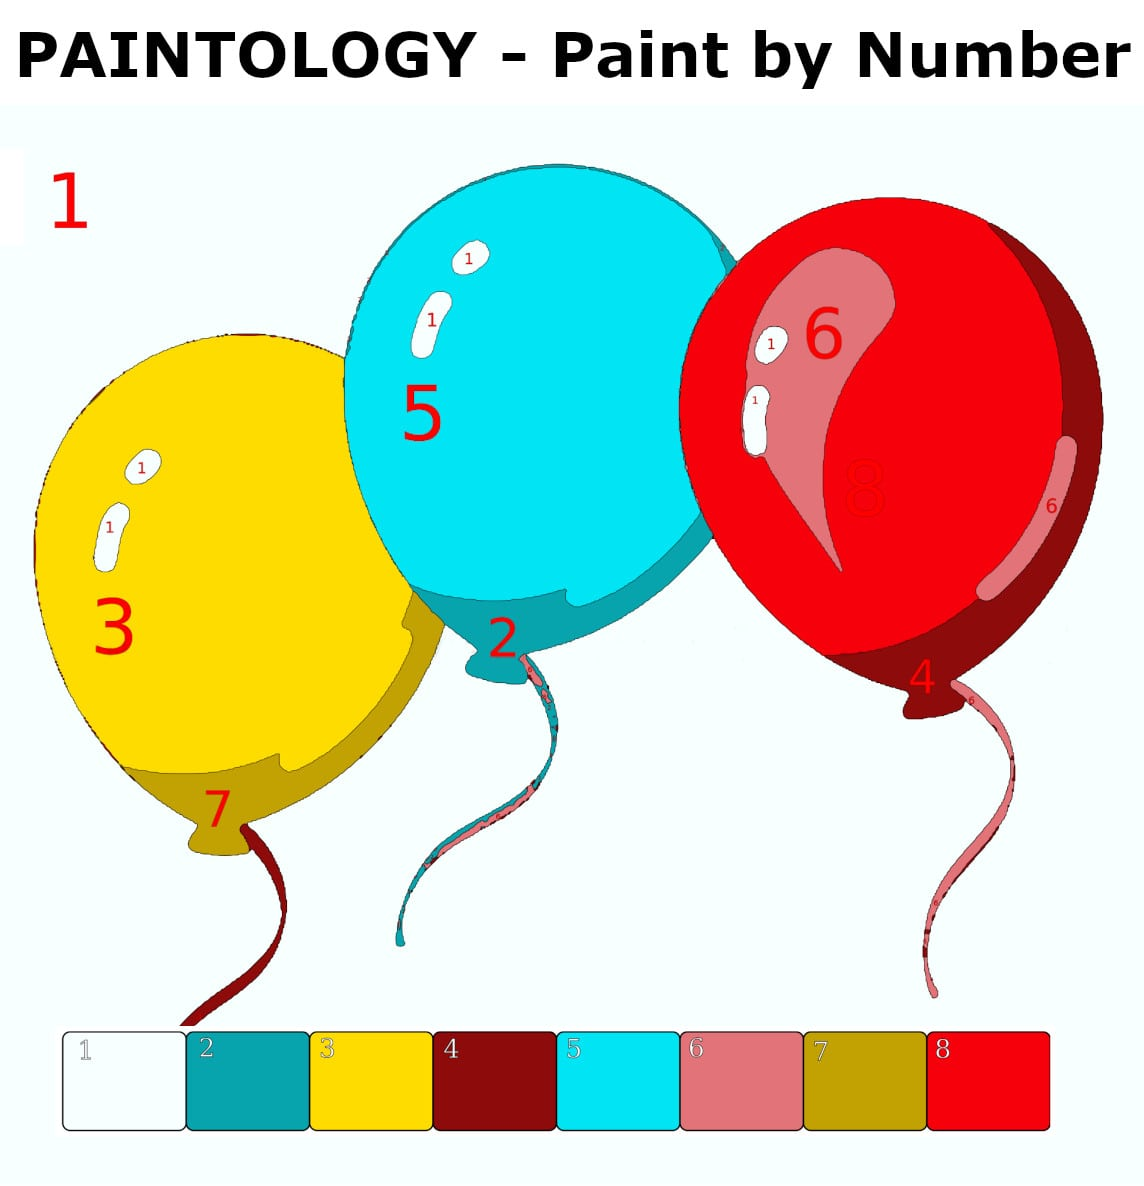 Paint by Number - Balloons Featured